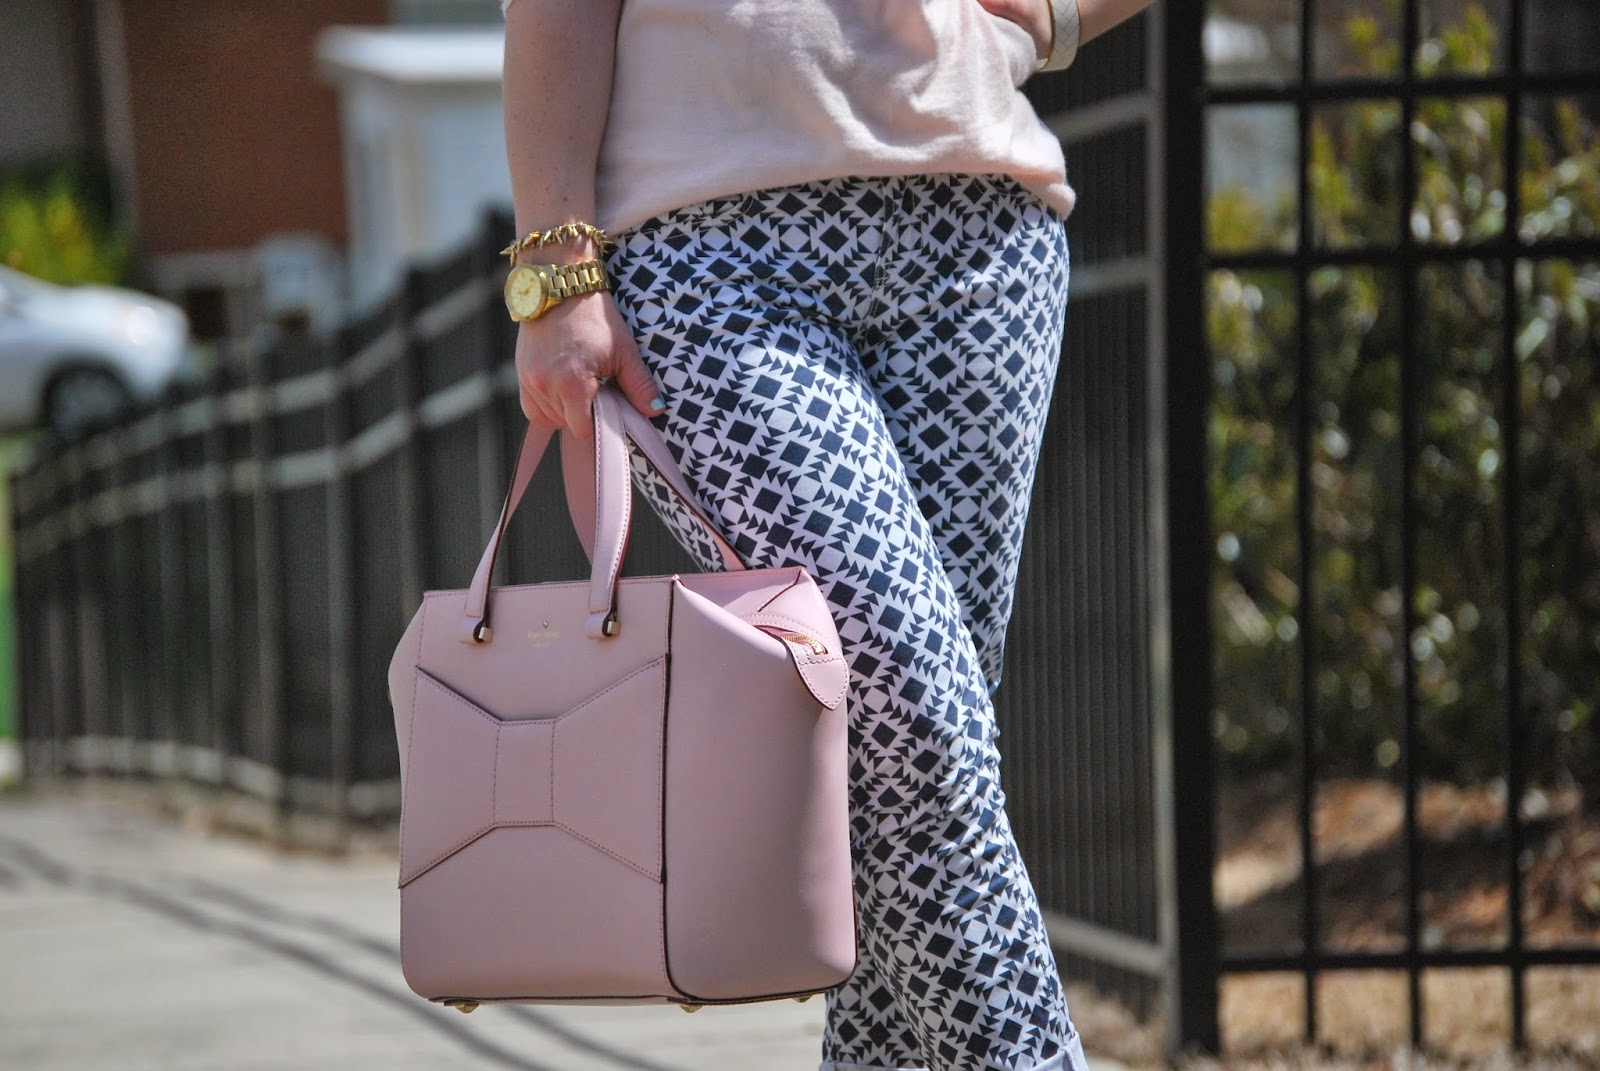 JCrew, Merino Mesh Sleeve Sweater, Kate Spade, Beau Bag, Valentino Rock Studs